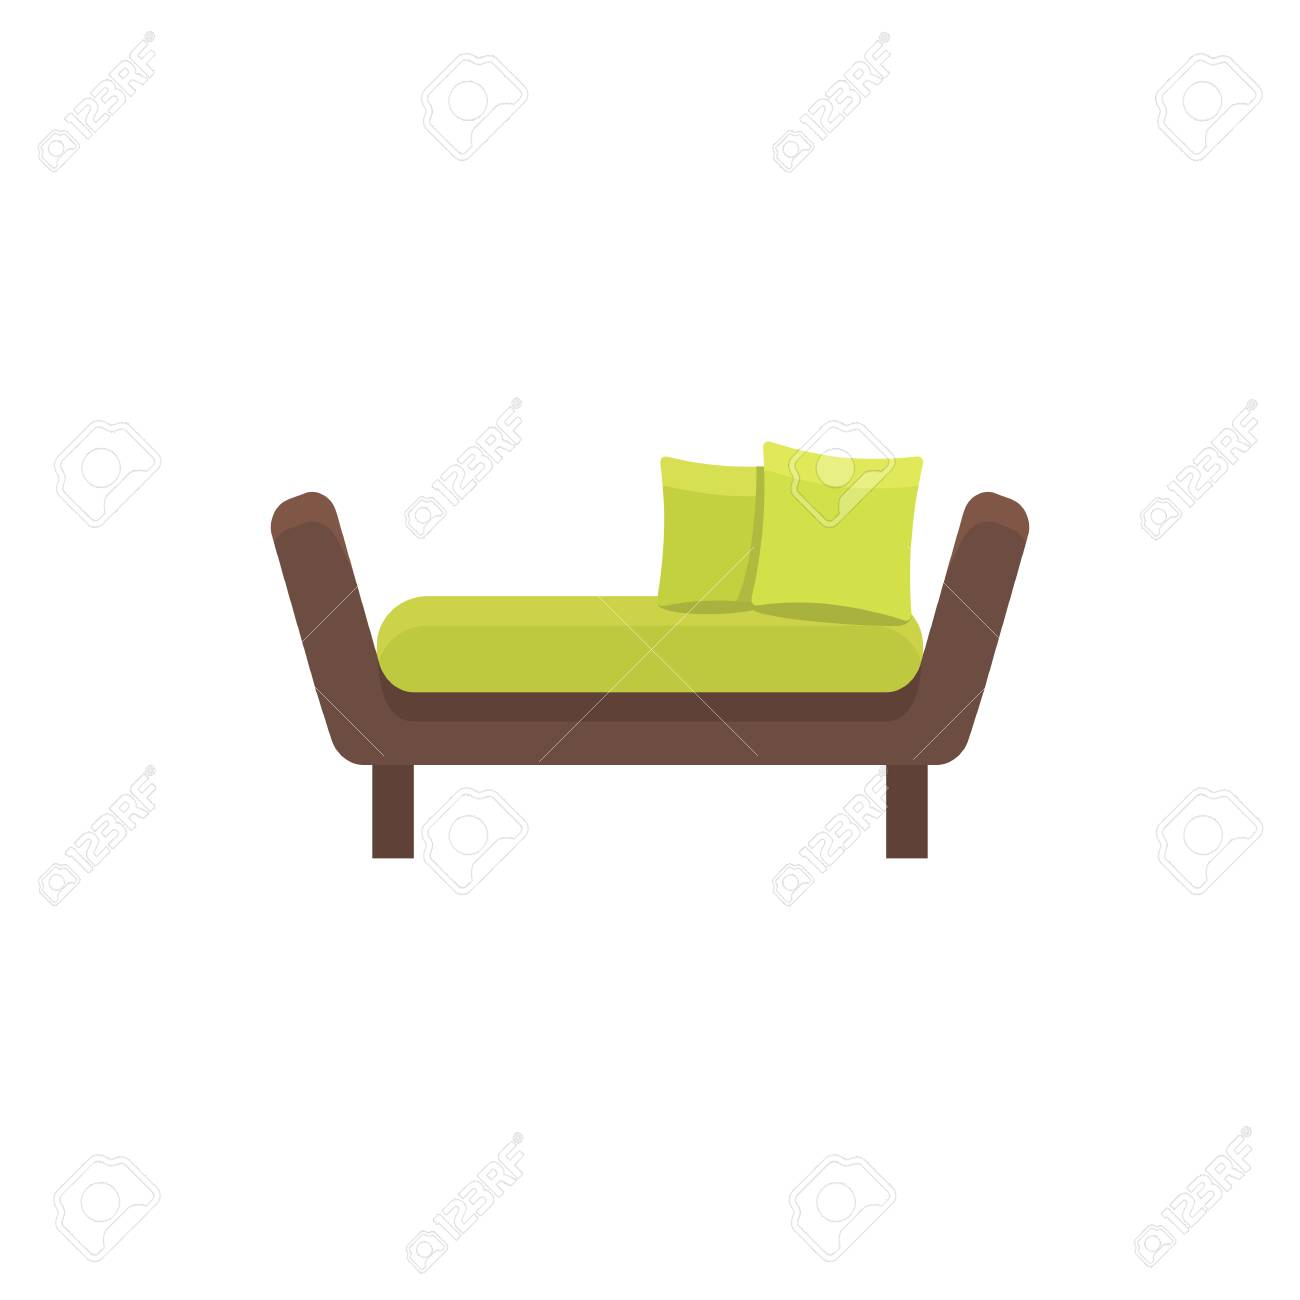 Green Daybed With Pillows Comfortable Sofa Vector Illustration